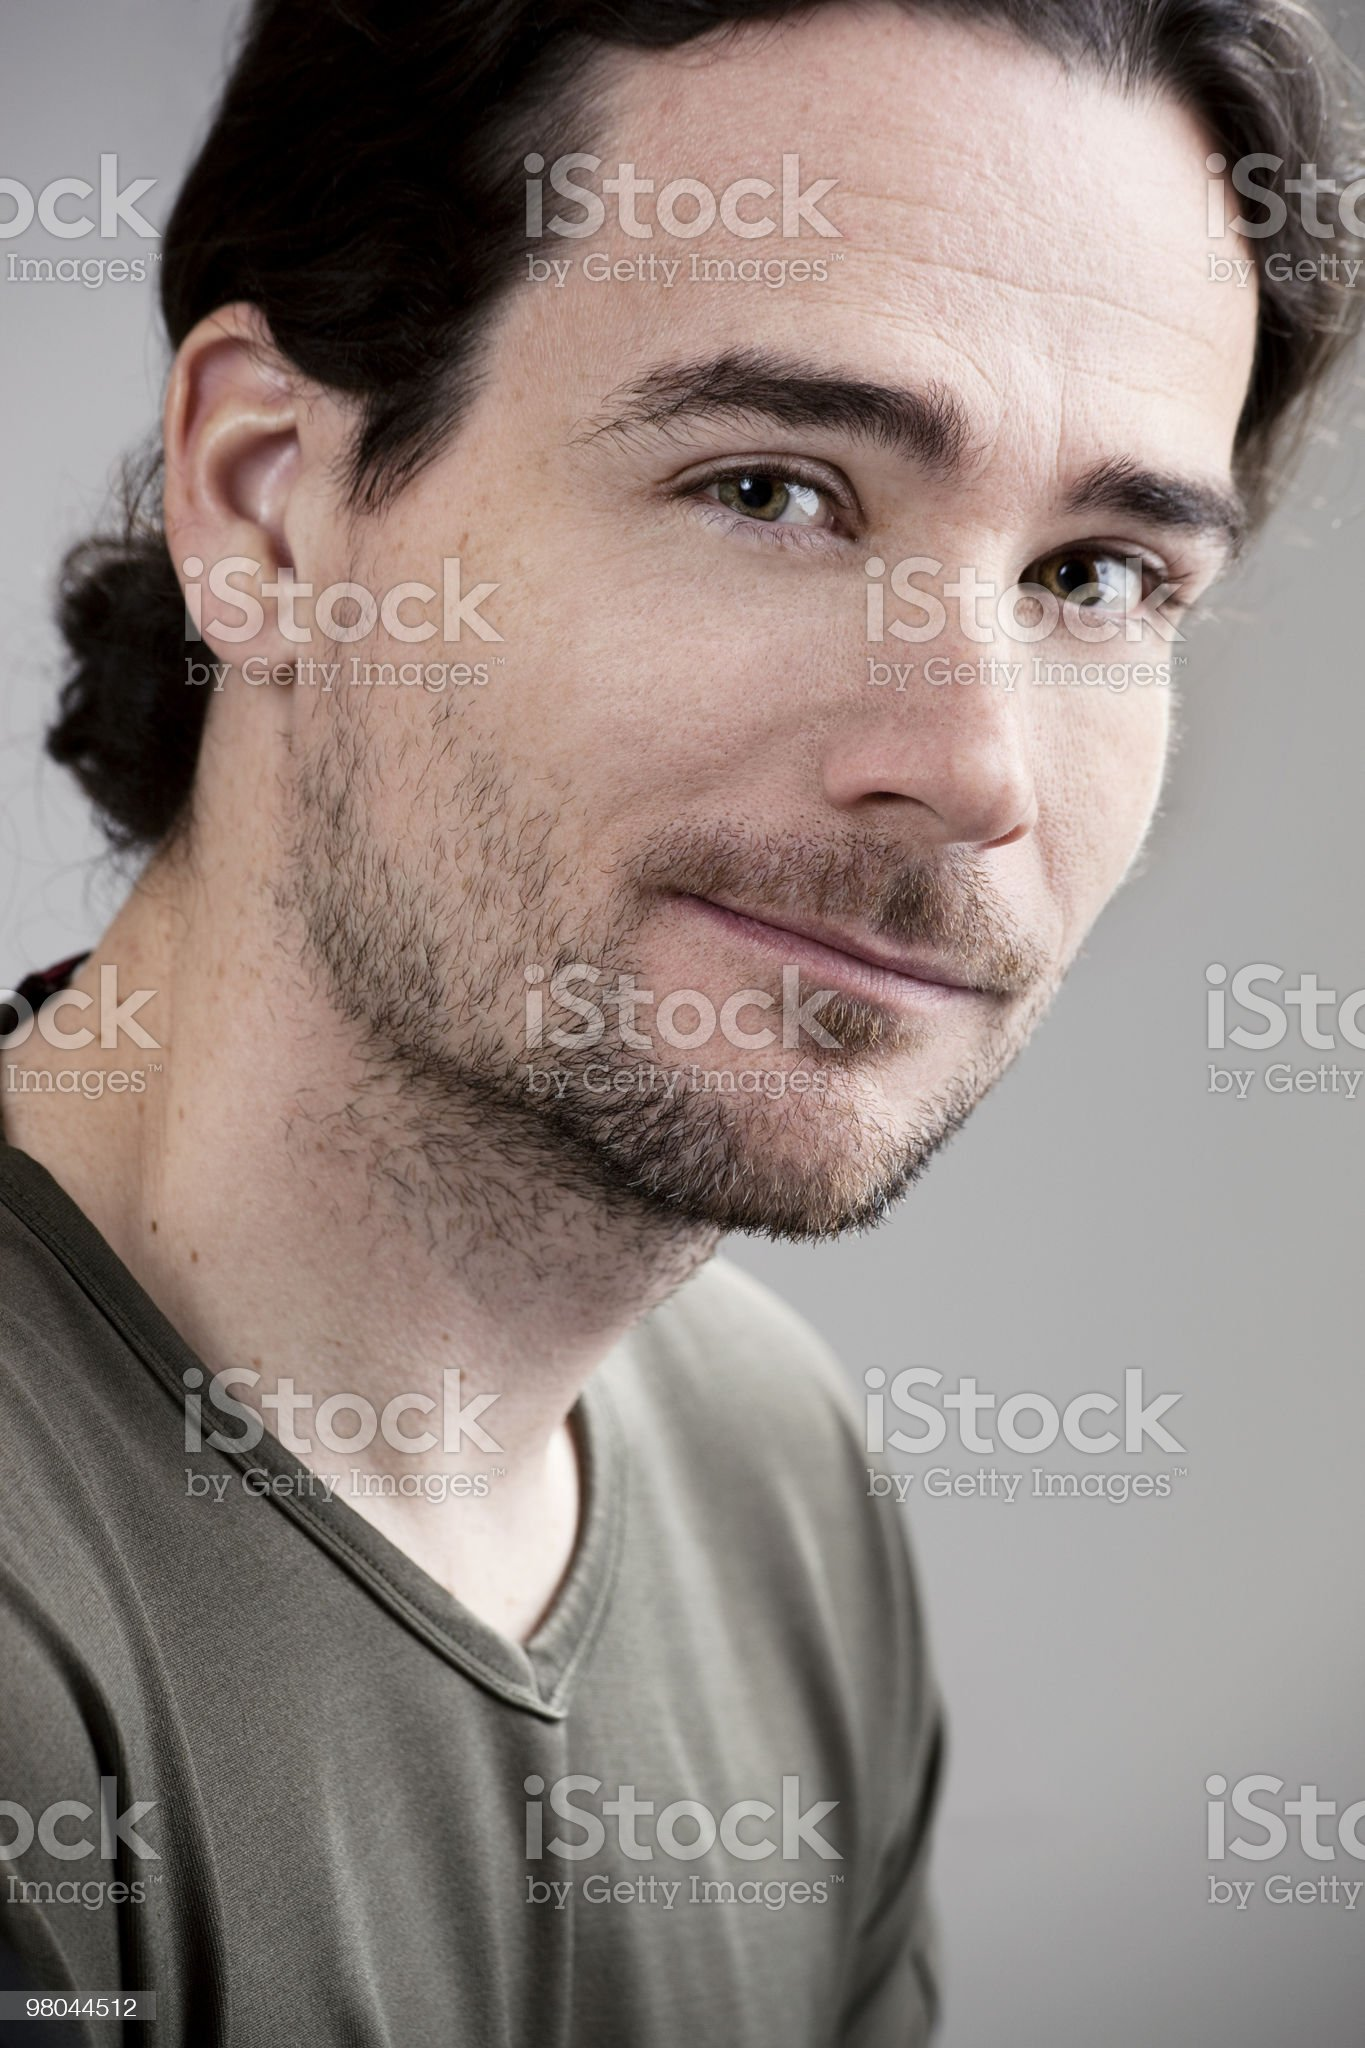 Handsome man smiling kindly royalty-free stock photo